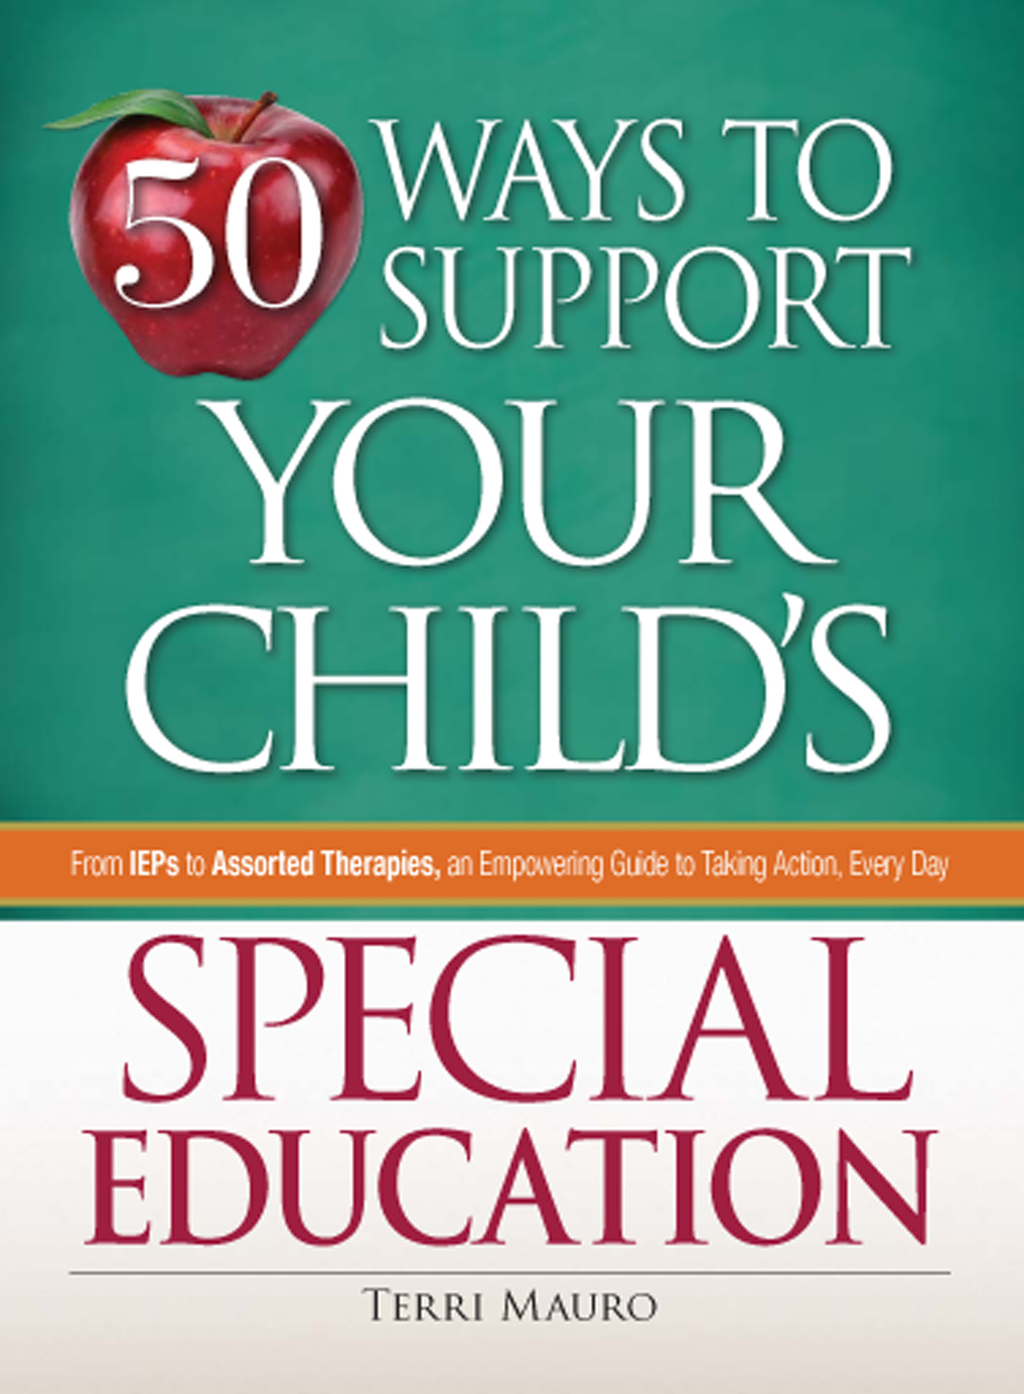 50 Ways to Support Your Child's Special Education From IEPs to Assorted Therapies,  an Empowering Guide to Taking Action,  Every Day